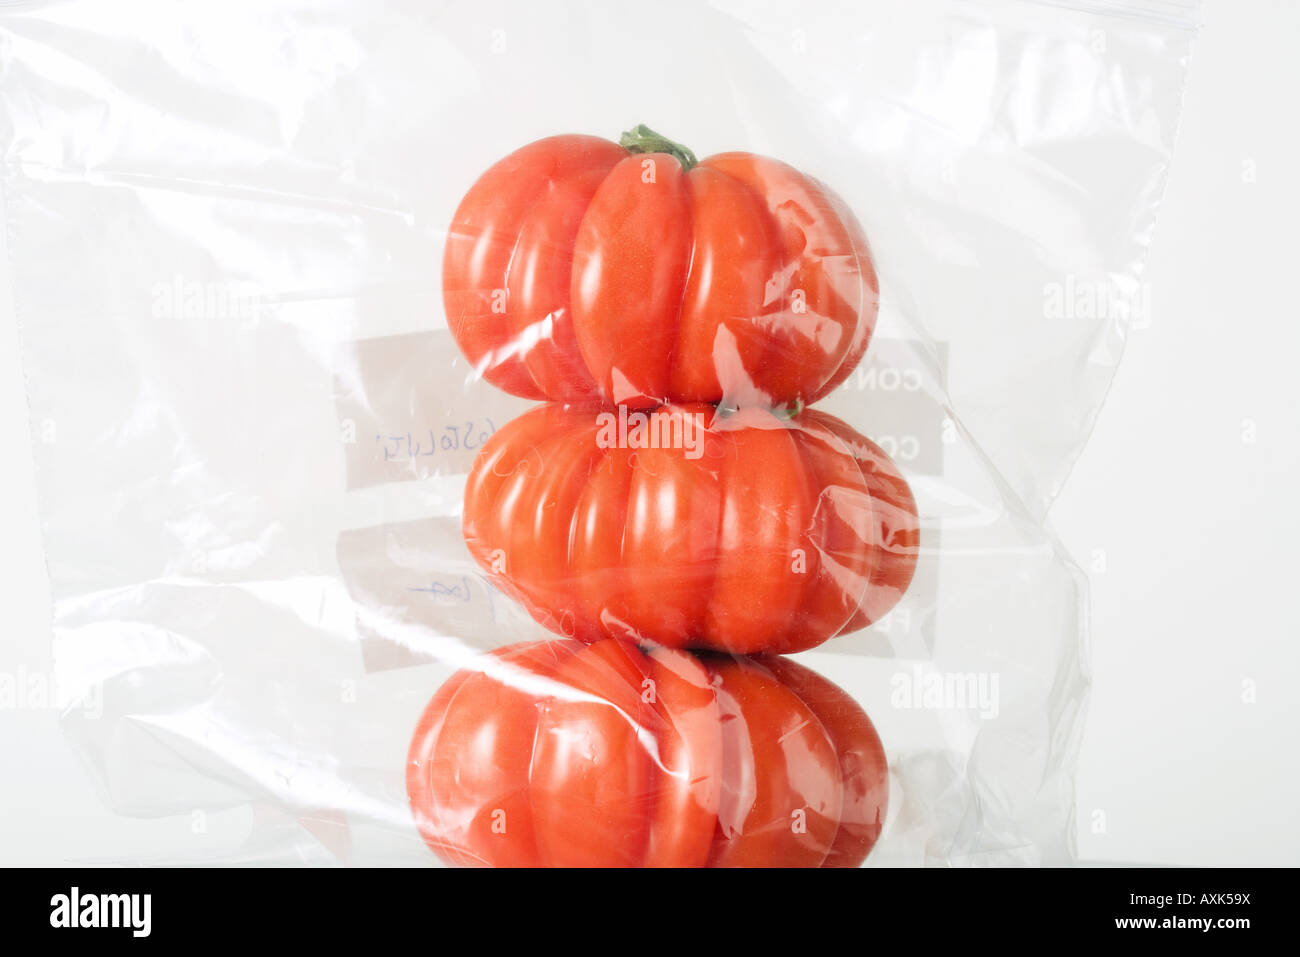 Heirloom tomatoes stacked in plastic bag, close-up - Stock Image